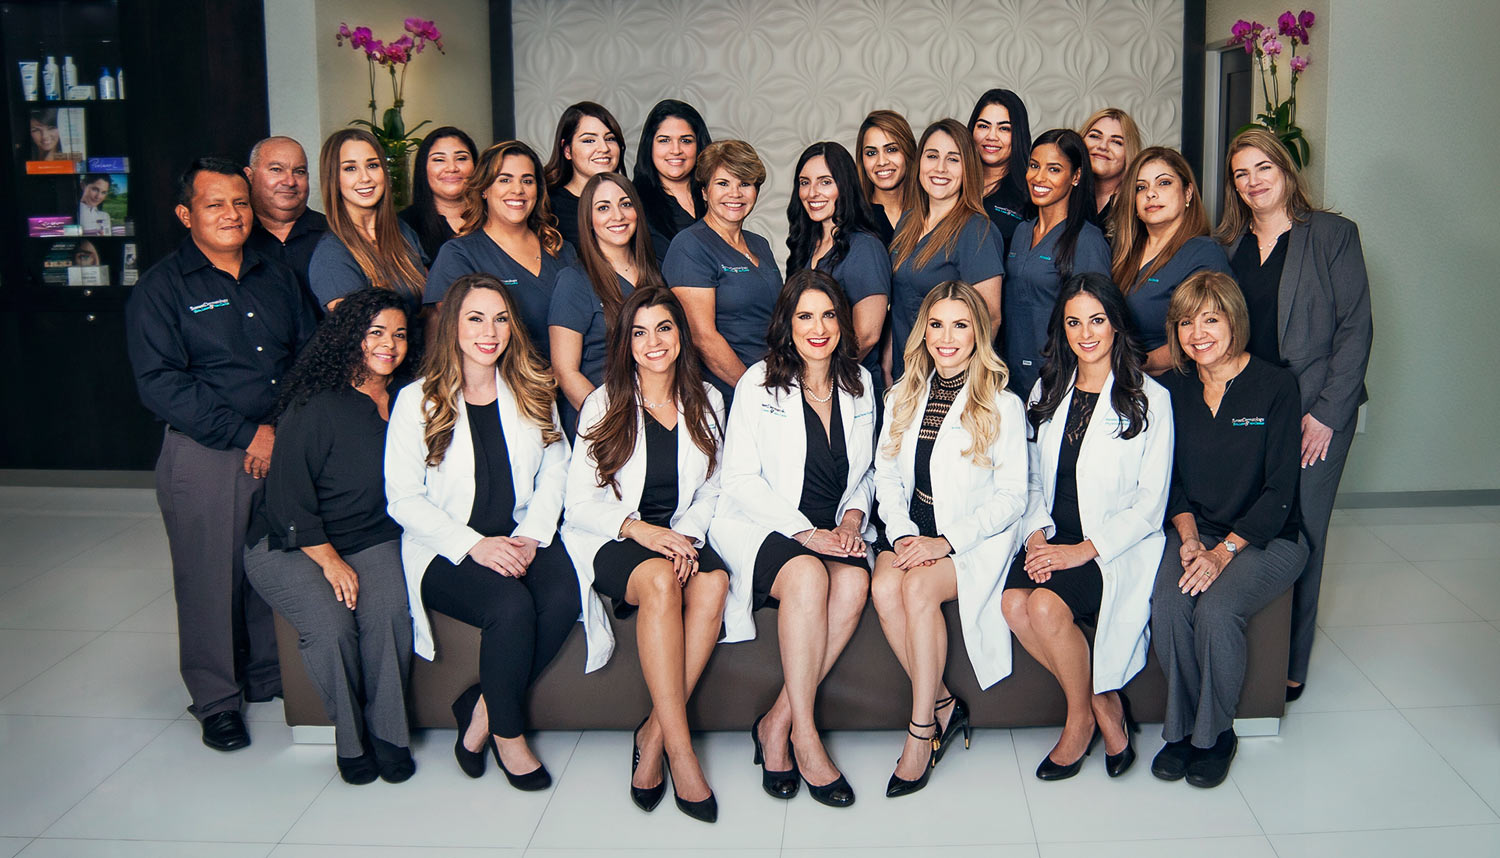 Group picture for providers and staff members of Sunset Dermatology taken at its location on South Miami.